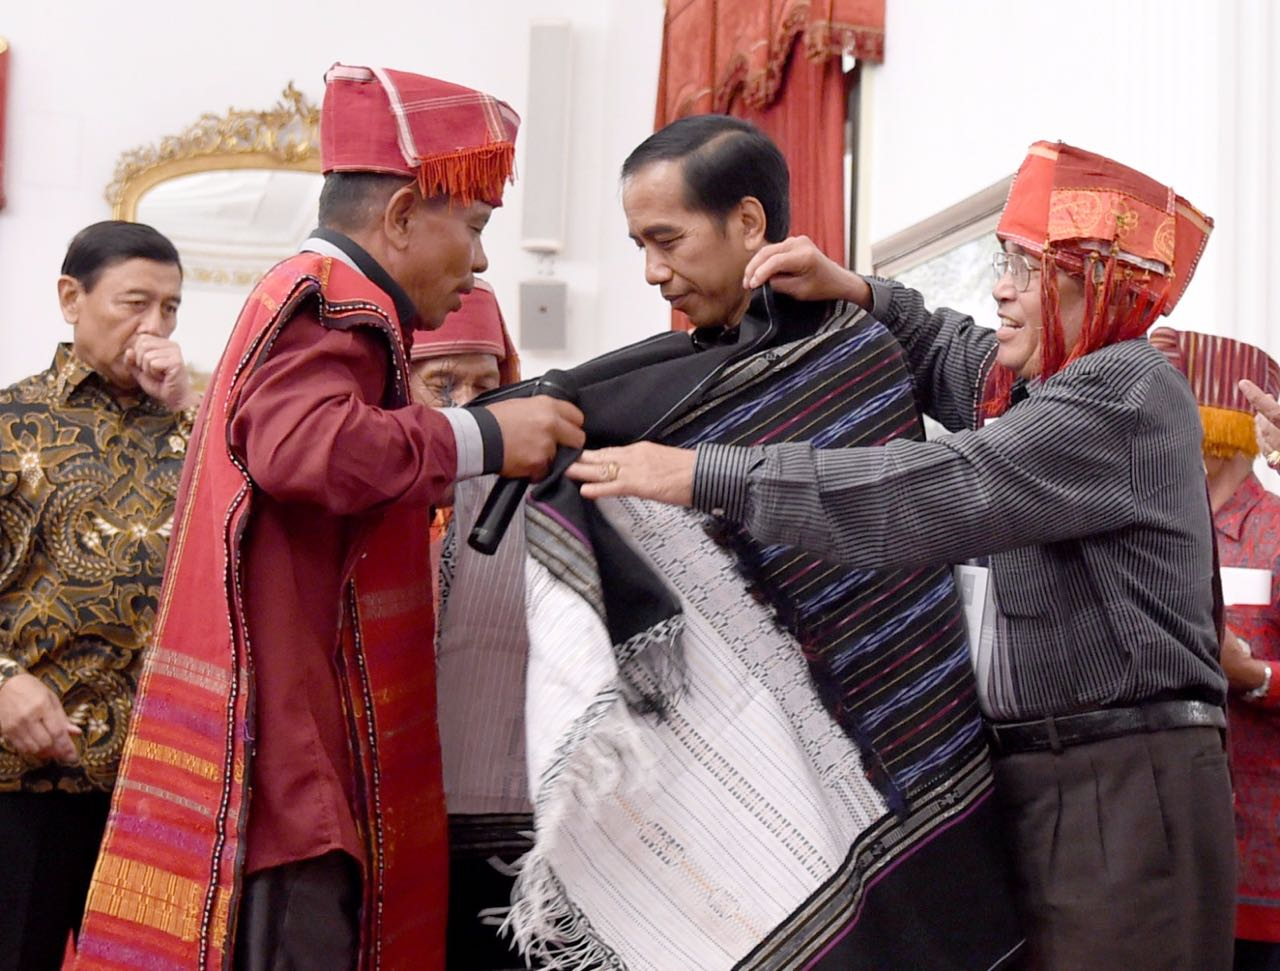 Jokowi receives traditional dress after recognizing land rights